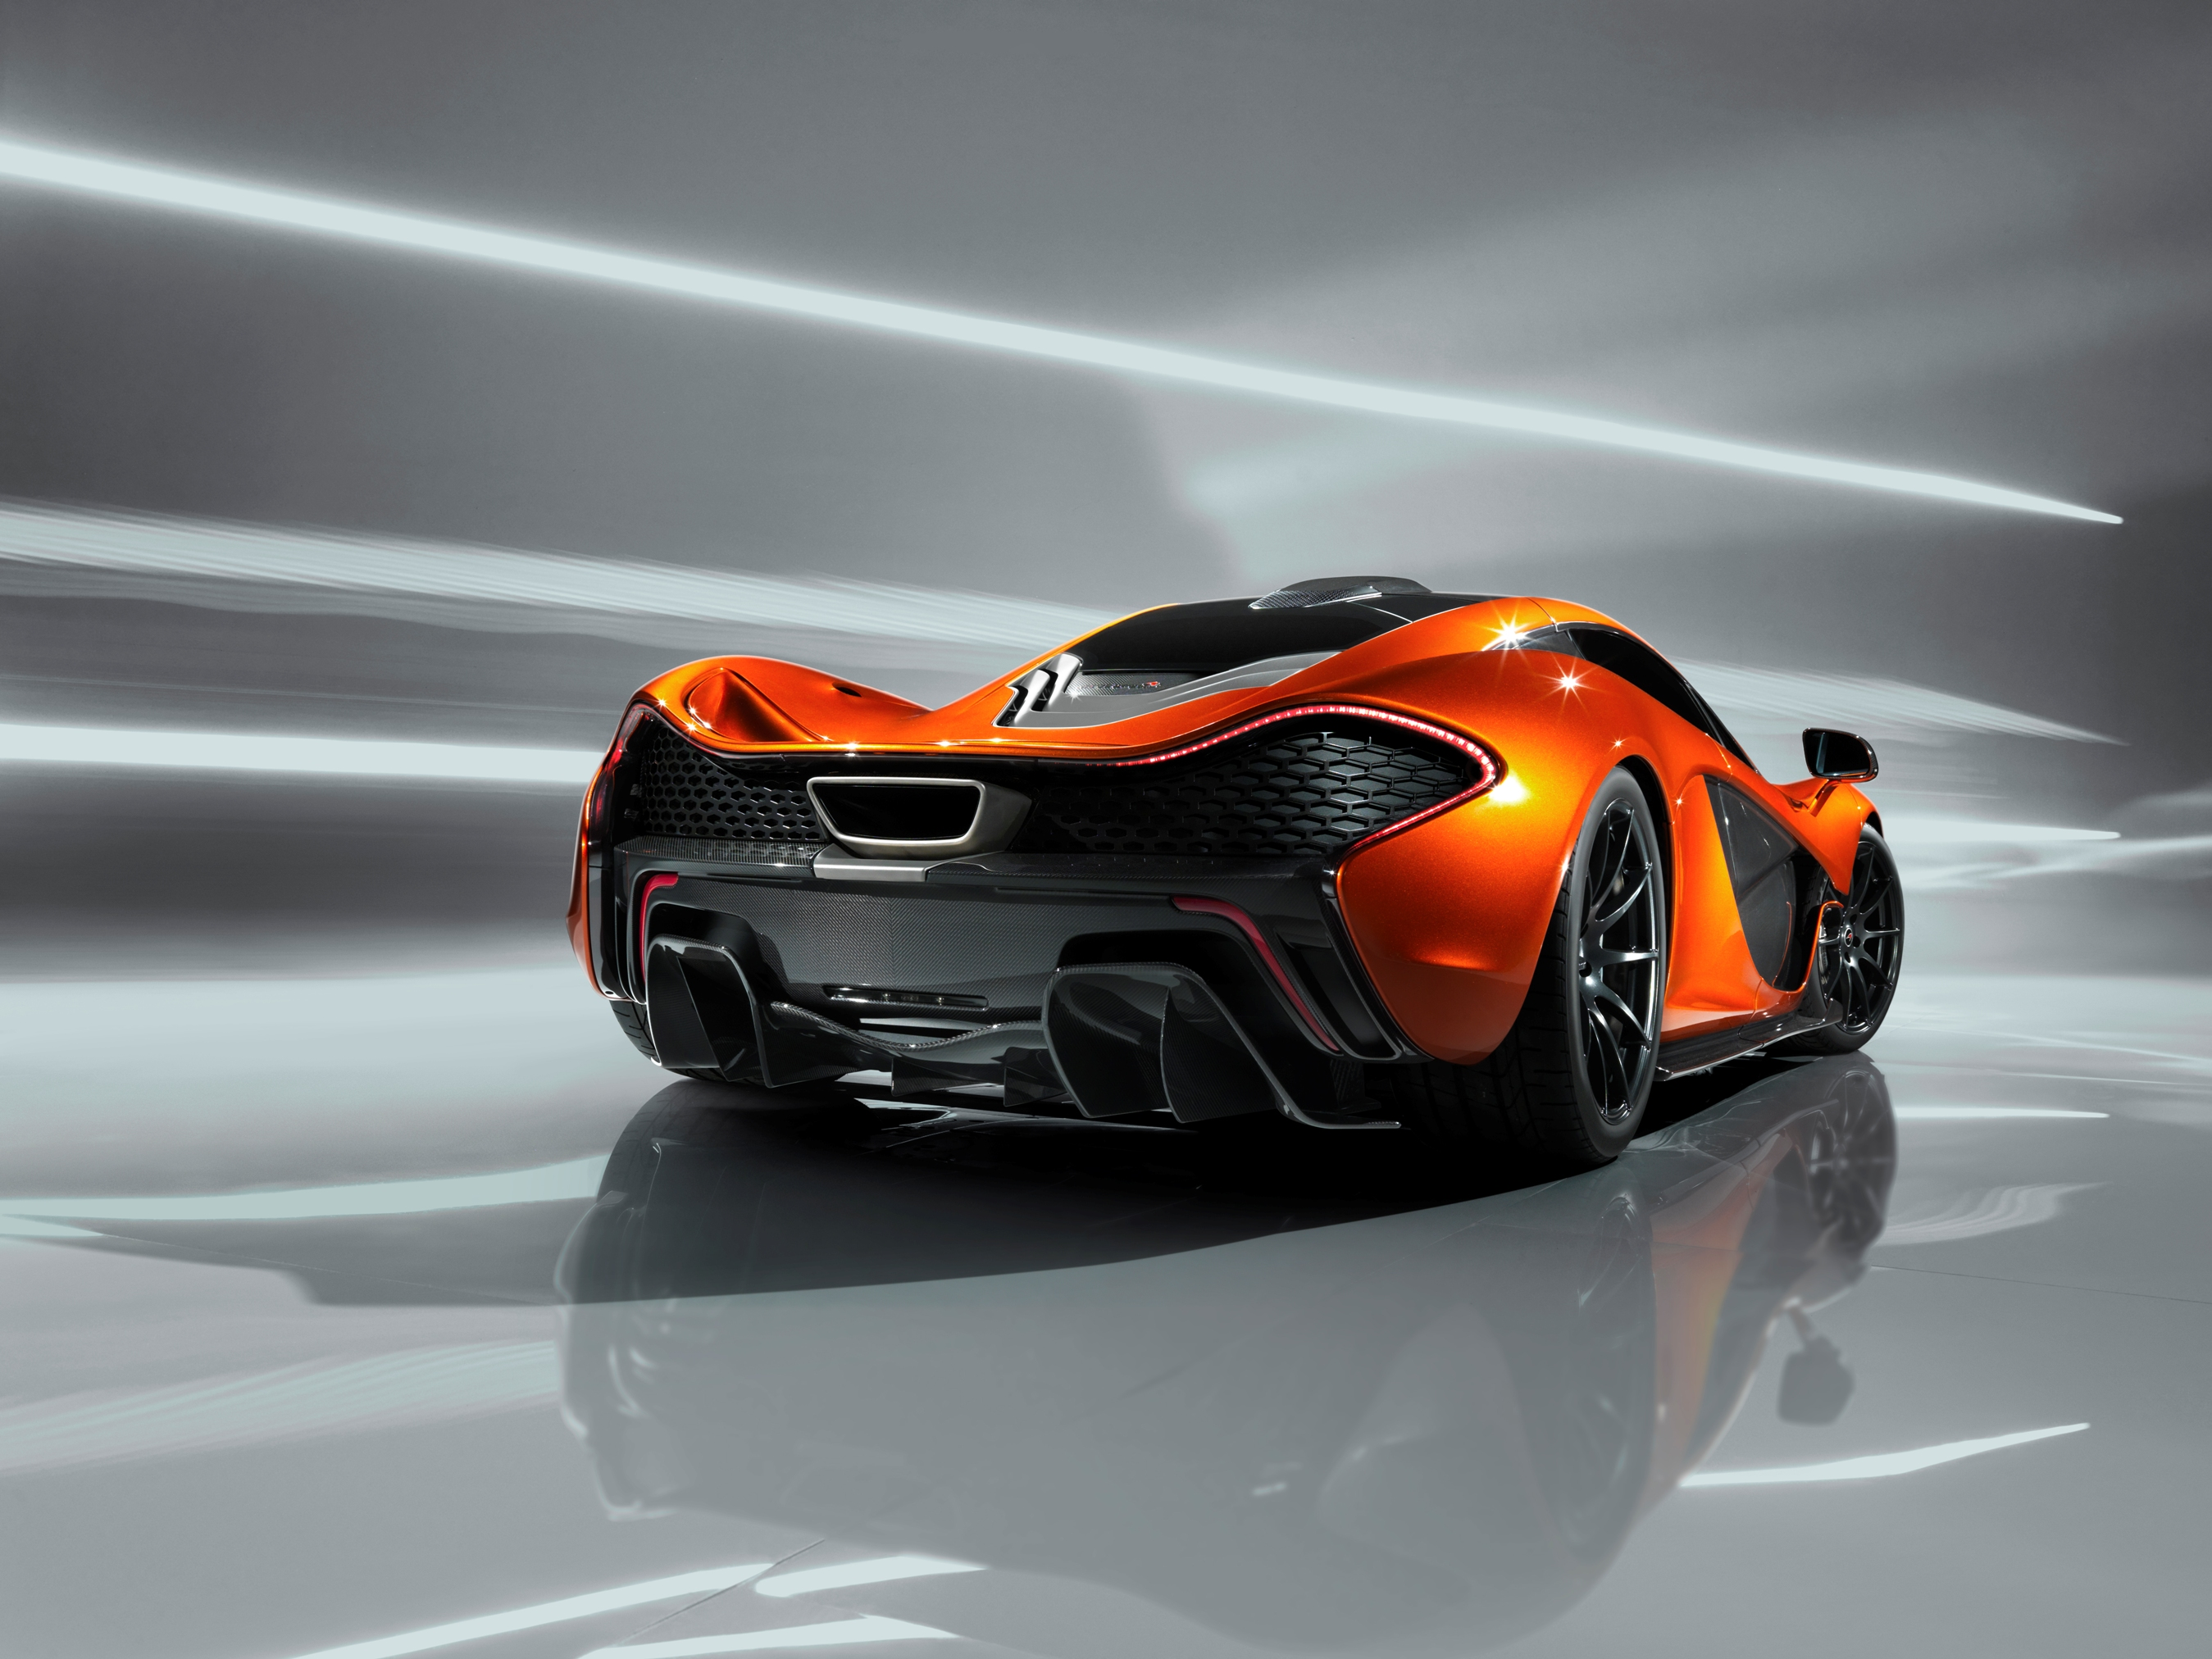 McLaren P1 Paris design concept - rear